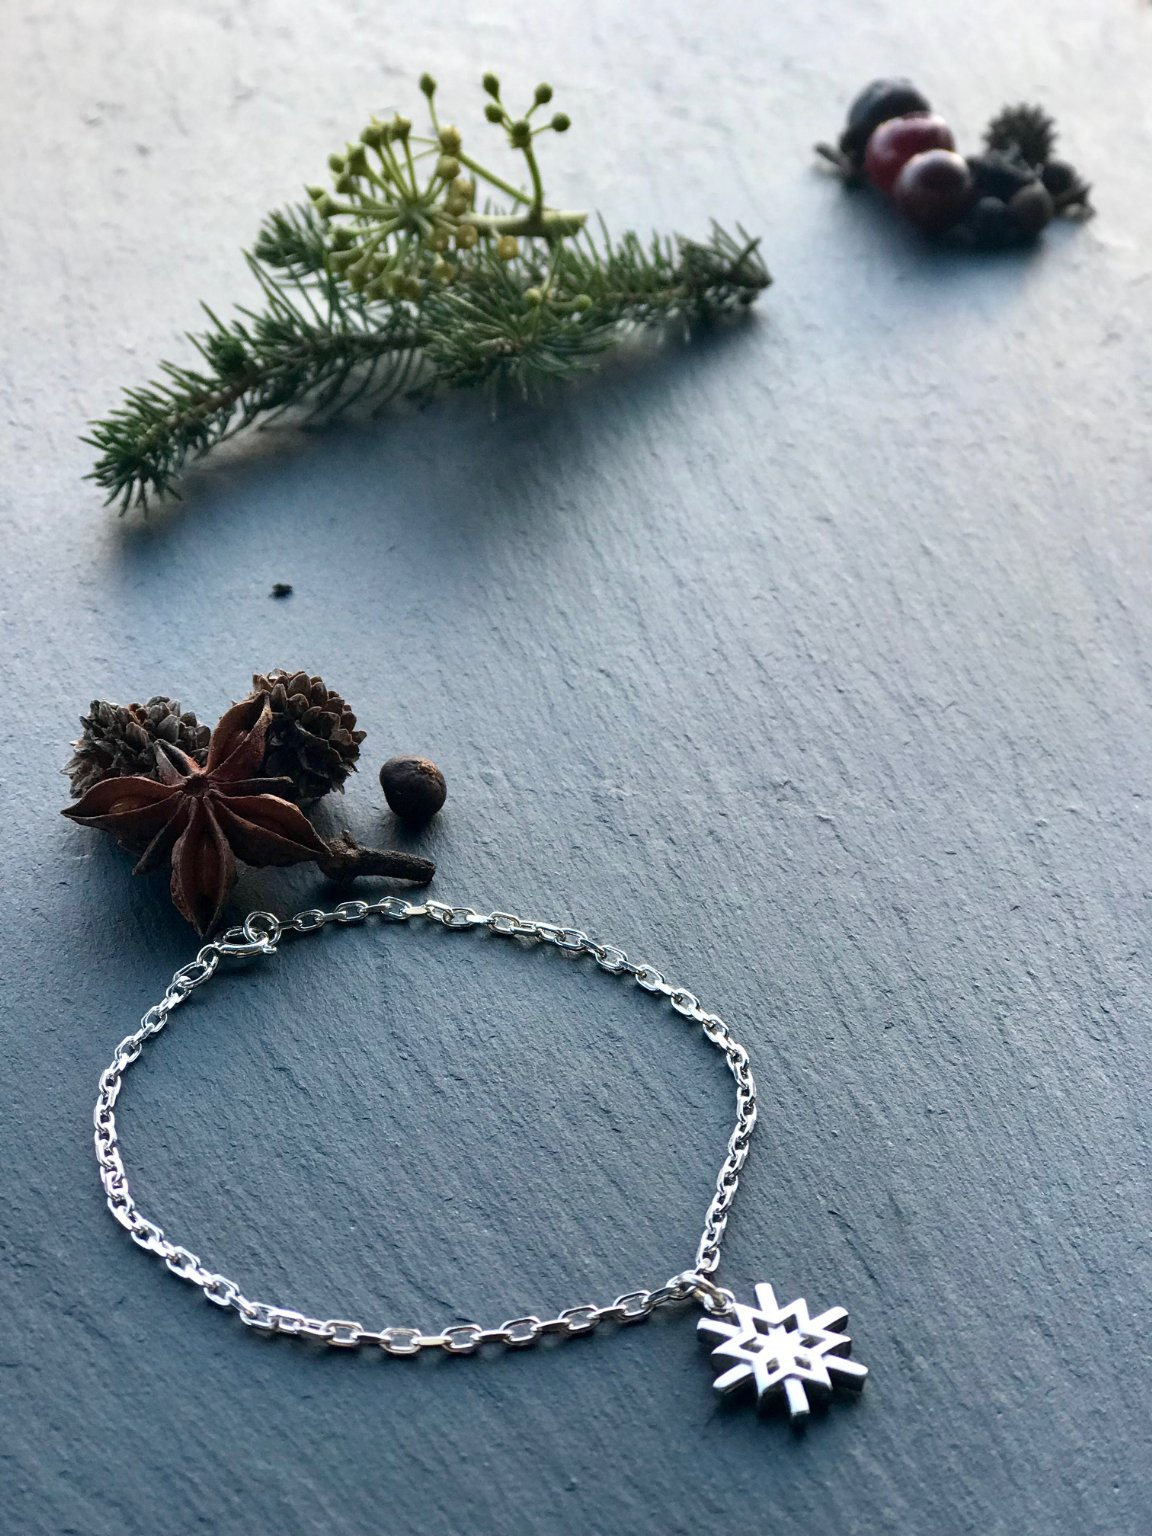 Part of the snowflake collection from Karen Duncan Jewellery